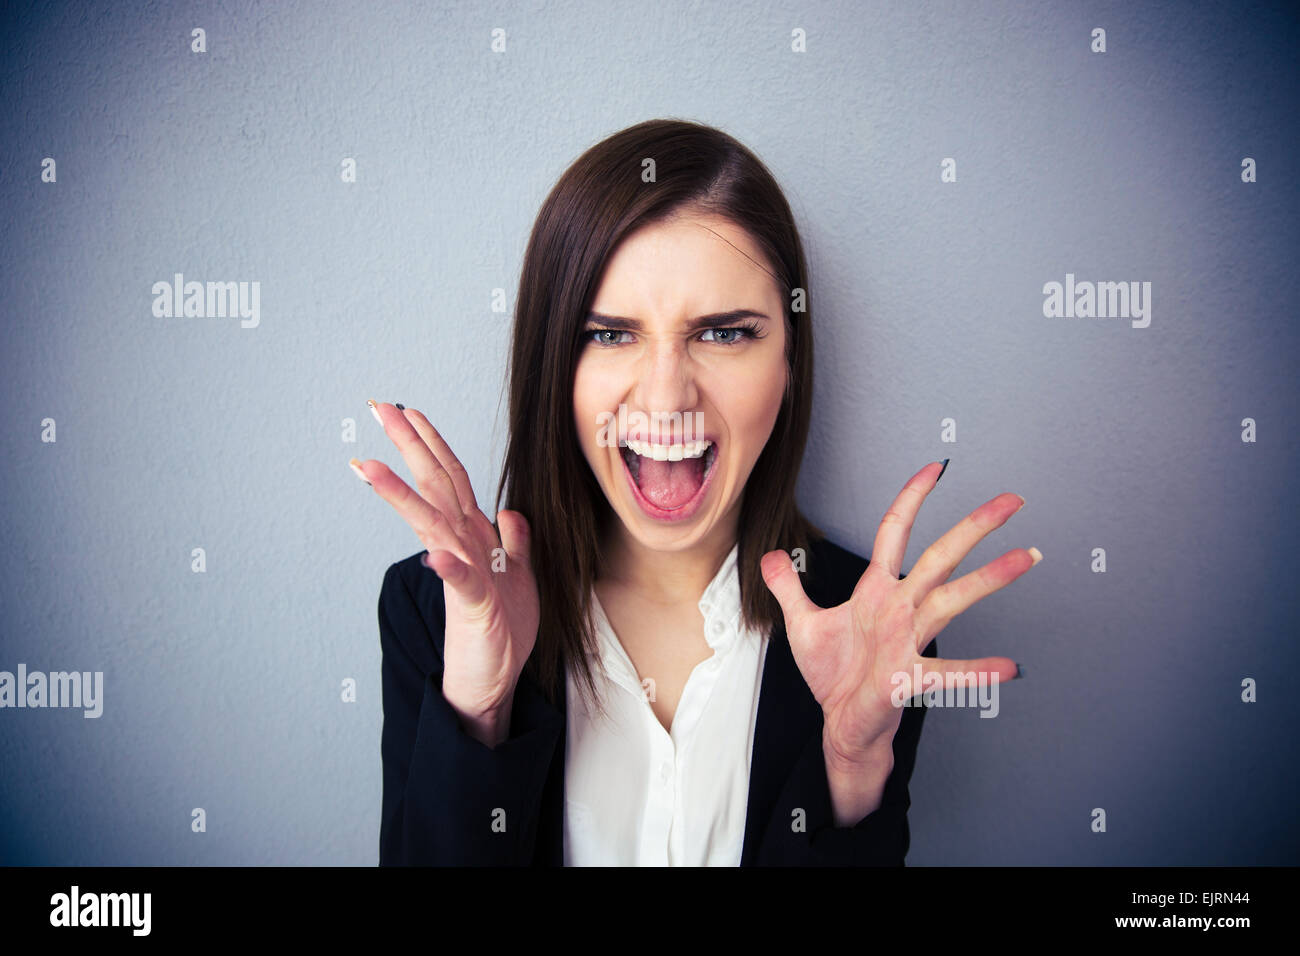 Angry woman screaming over gray background. Looking at camera Stock Photo